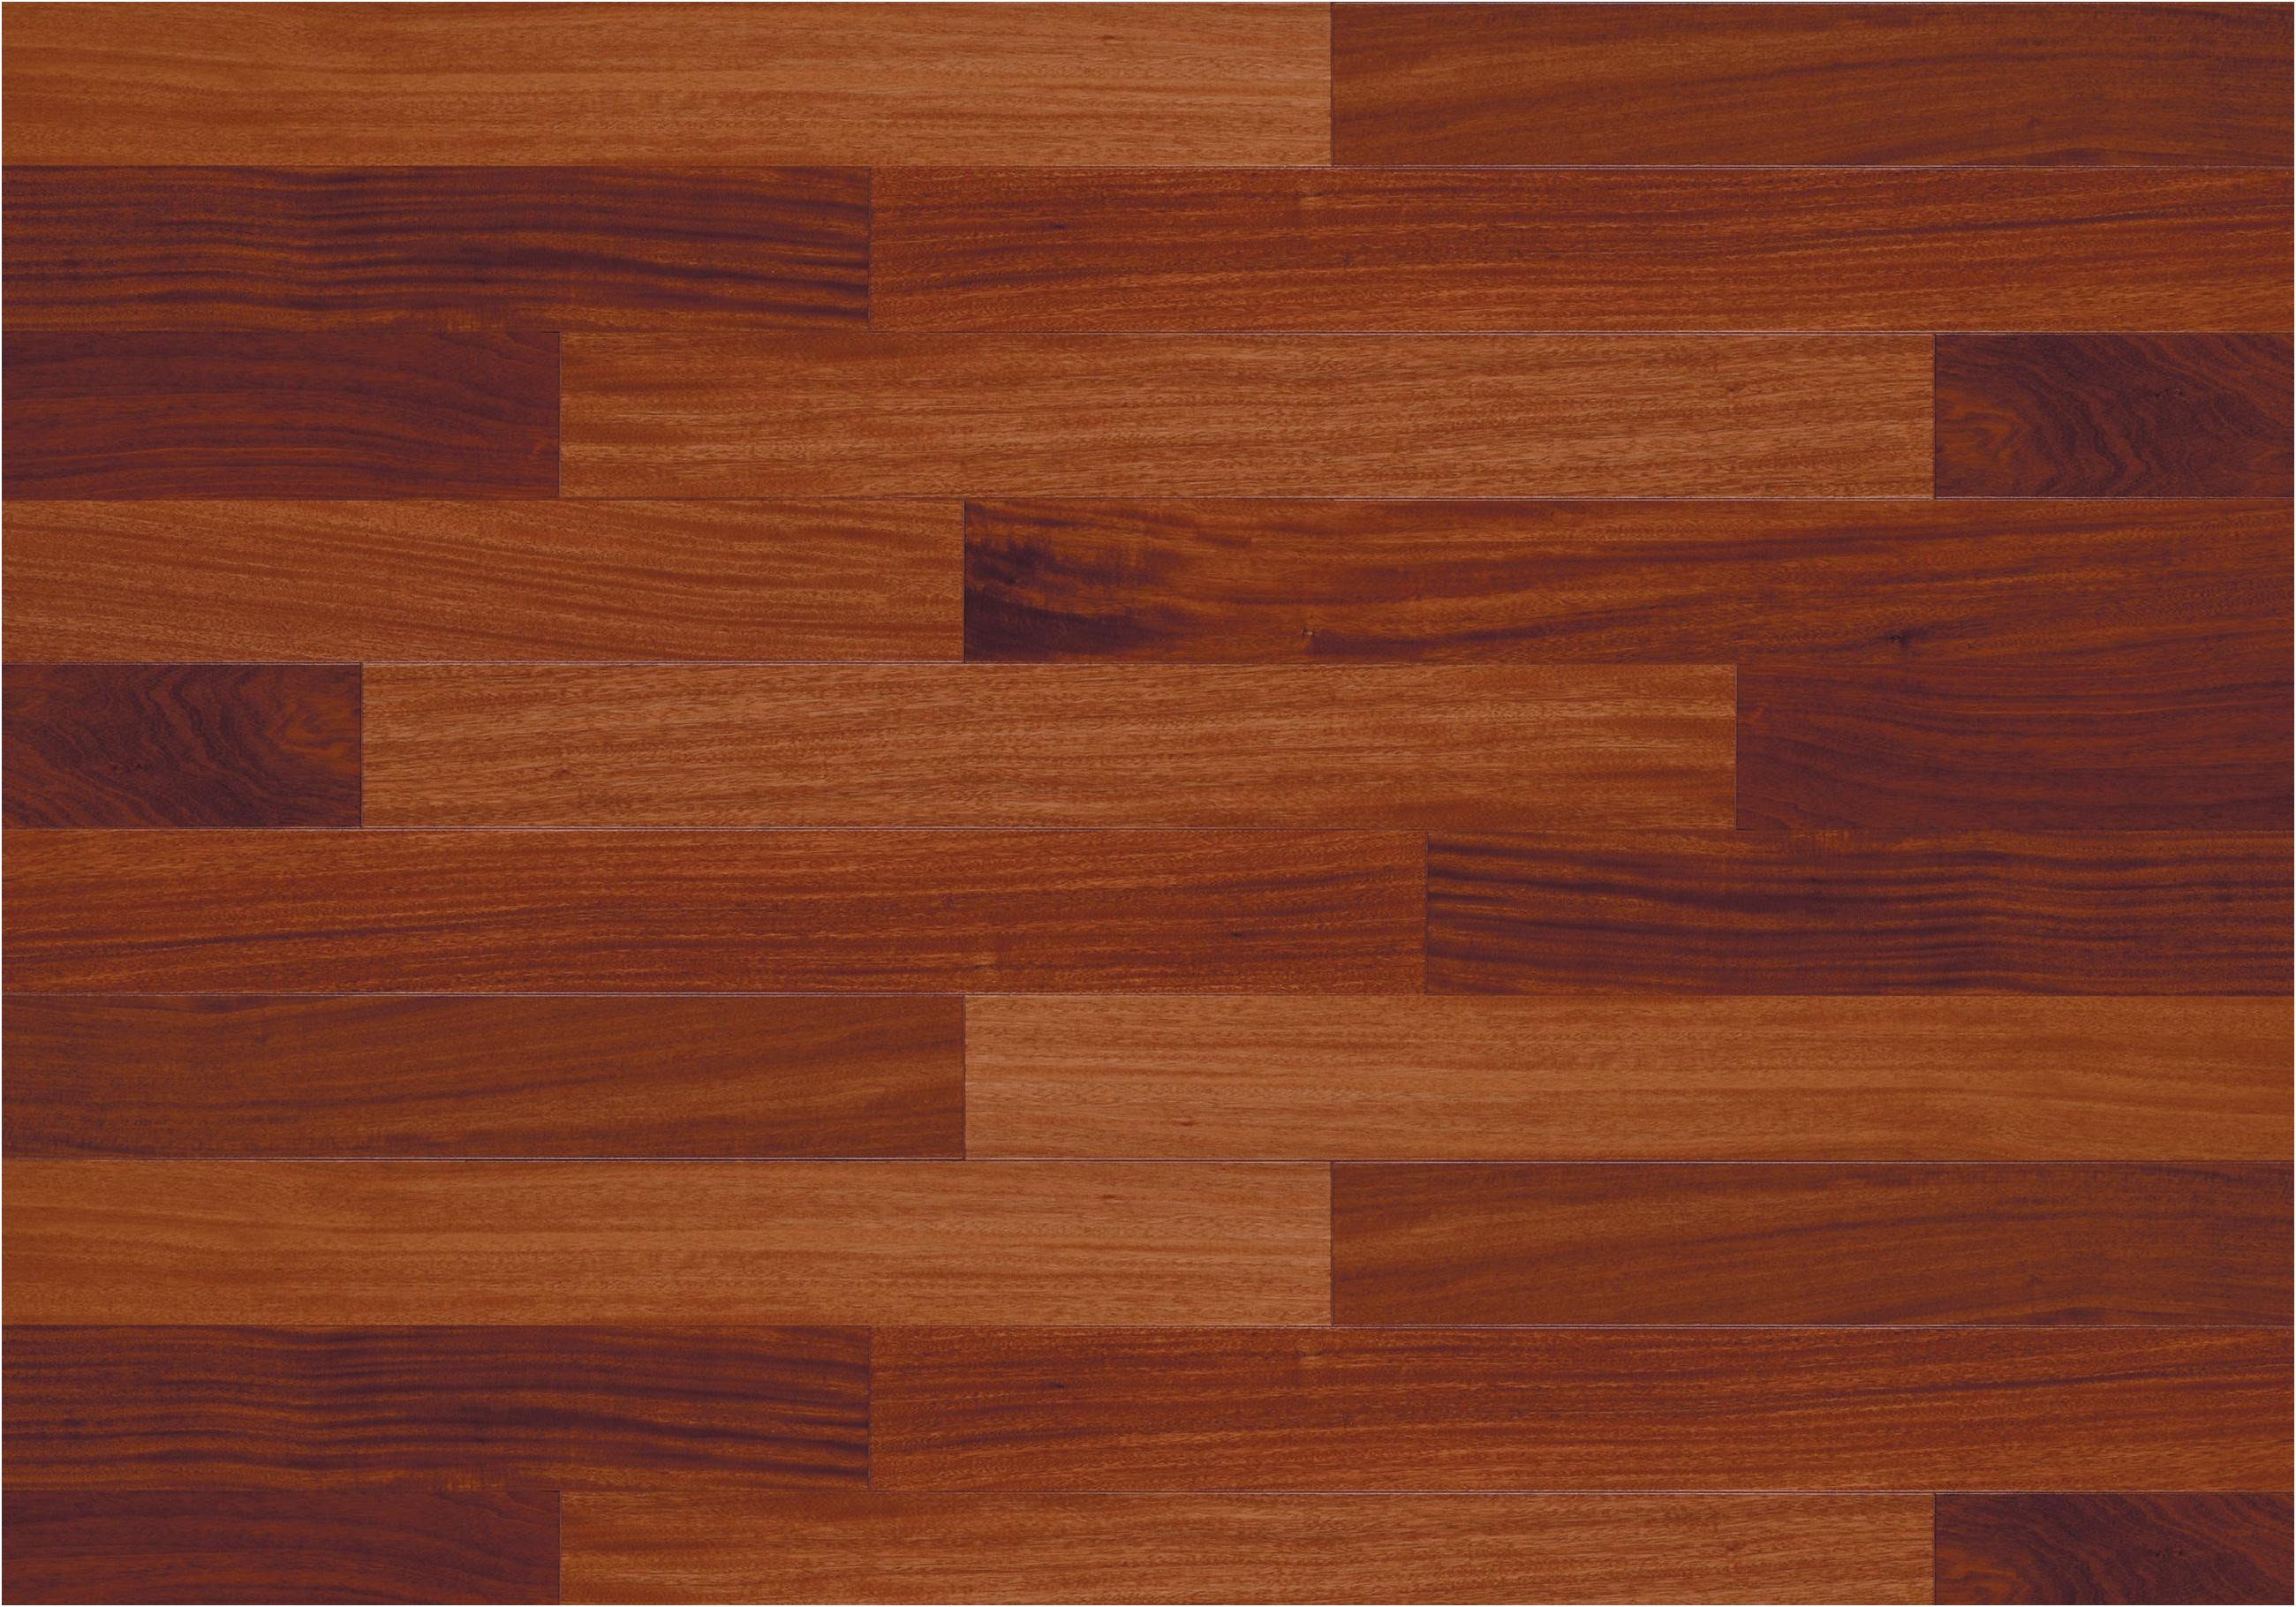 bamboo hardwood flooring prices of pros and cons of bamboo flooring prefinished hardwood flooring pros in pros and cons of bamboo flooring prefinished hardwood flooring pros and cons galerie pros and cons